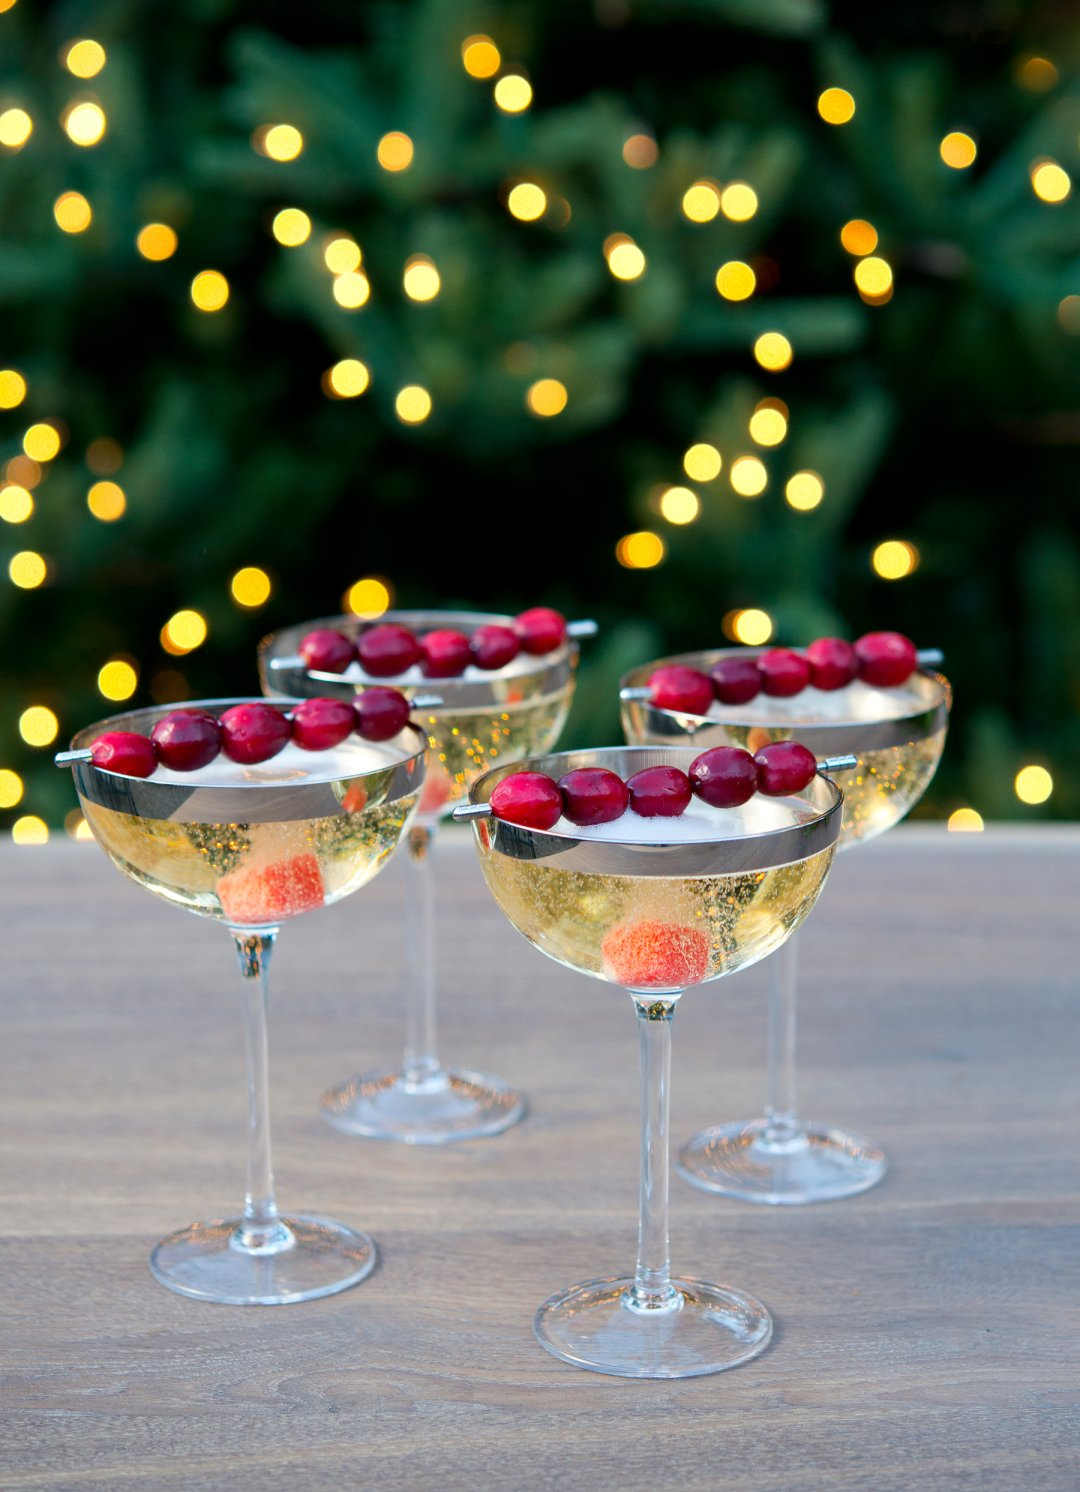 four glasses of champagne with cranberries on a table in front of a christmas tree